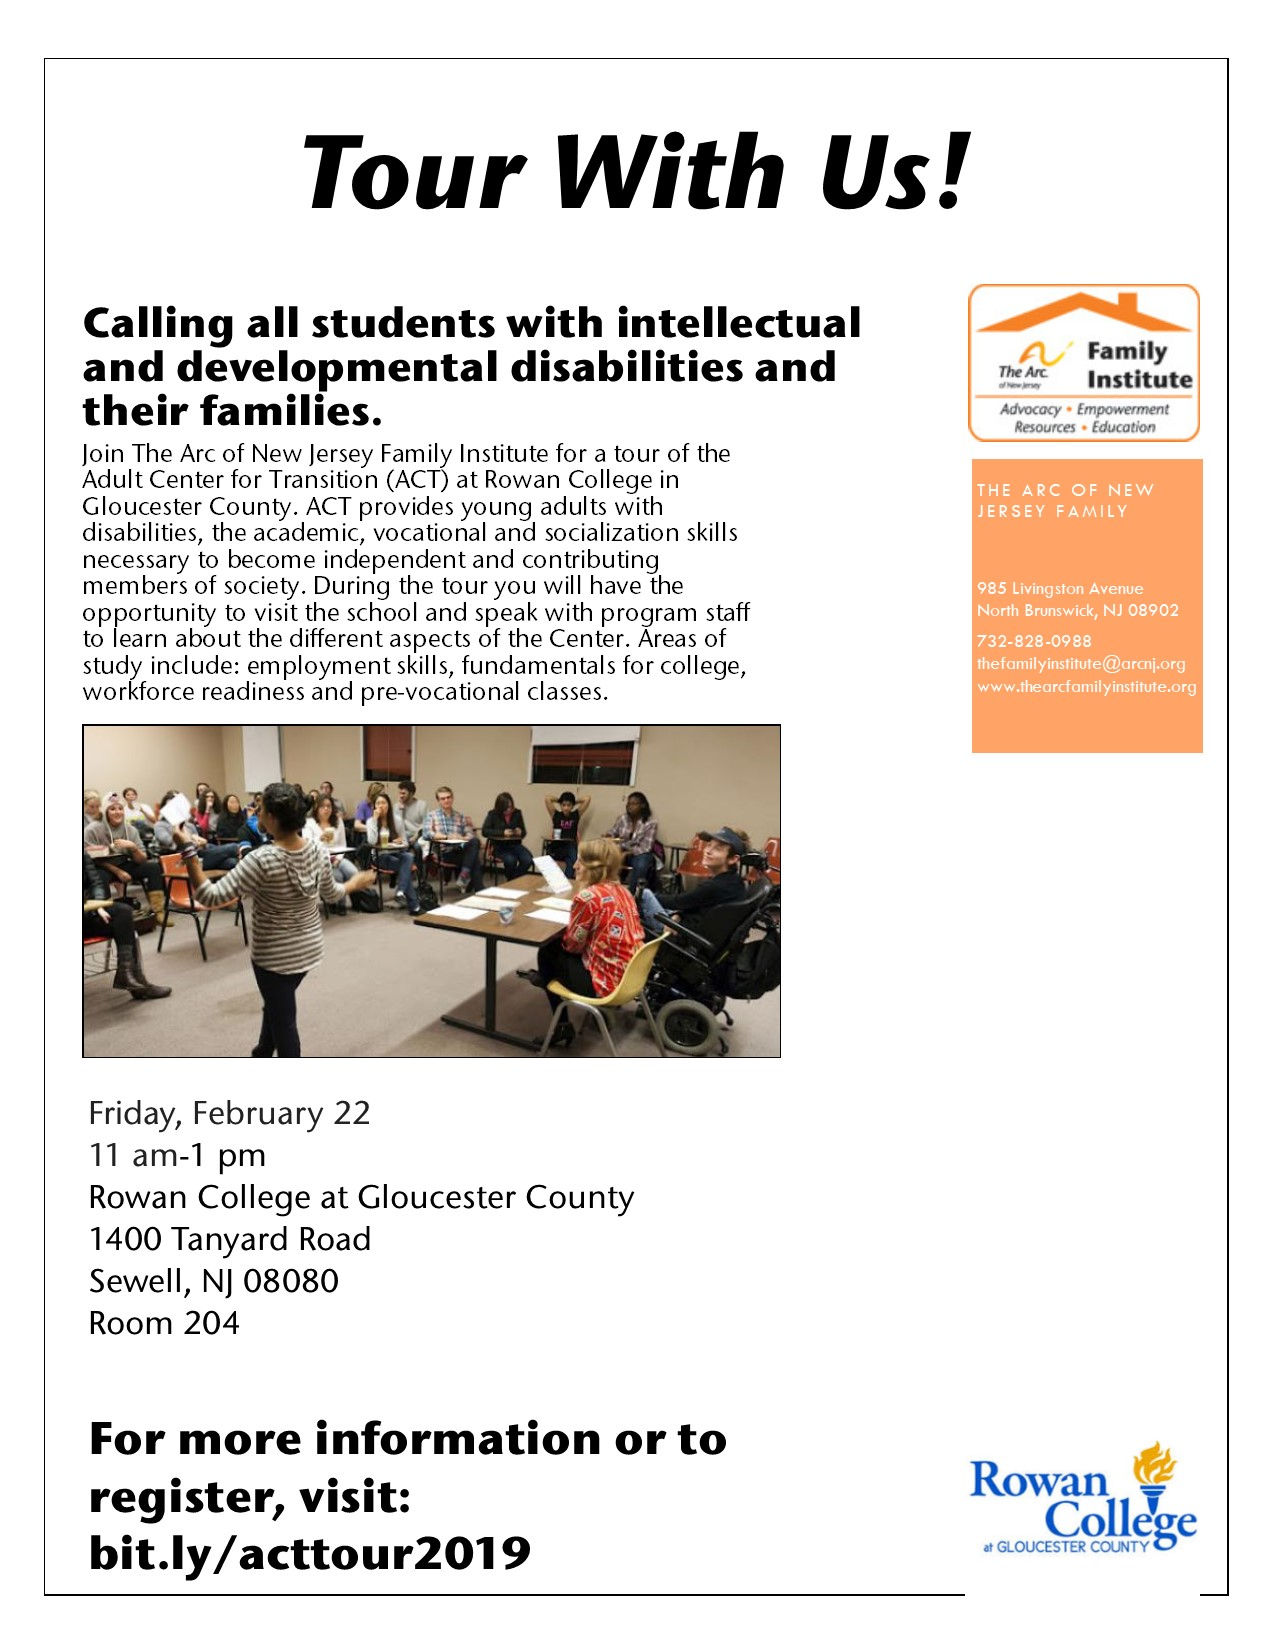 Friday, February 22 - Adult Center for Transition (ACT) at Rowan College in Gloucester County